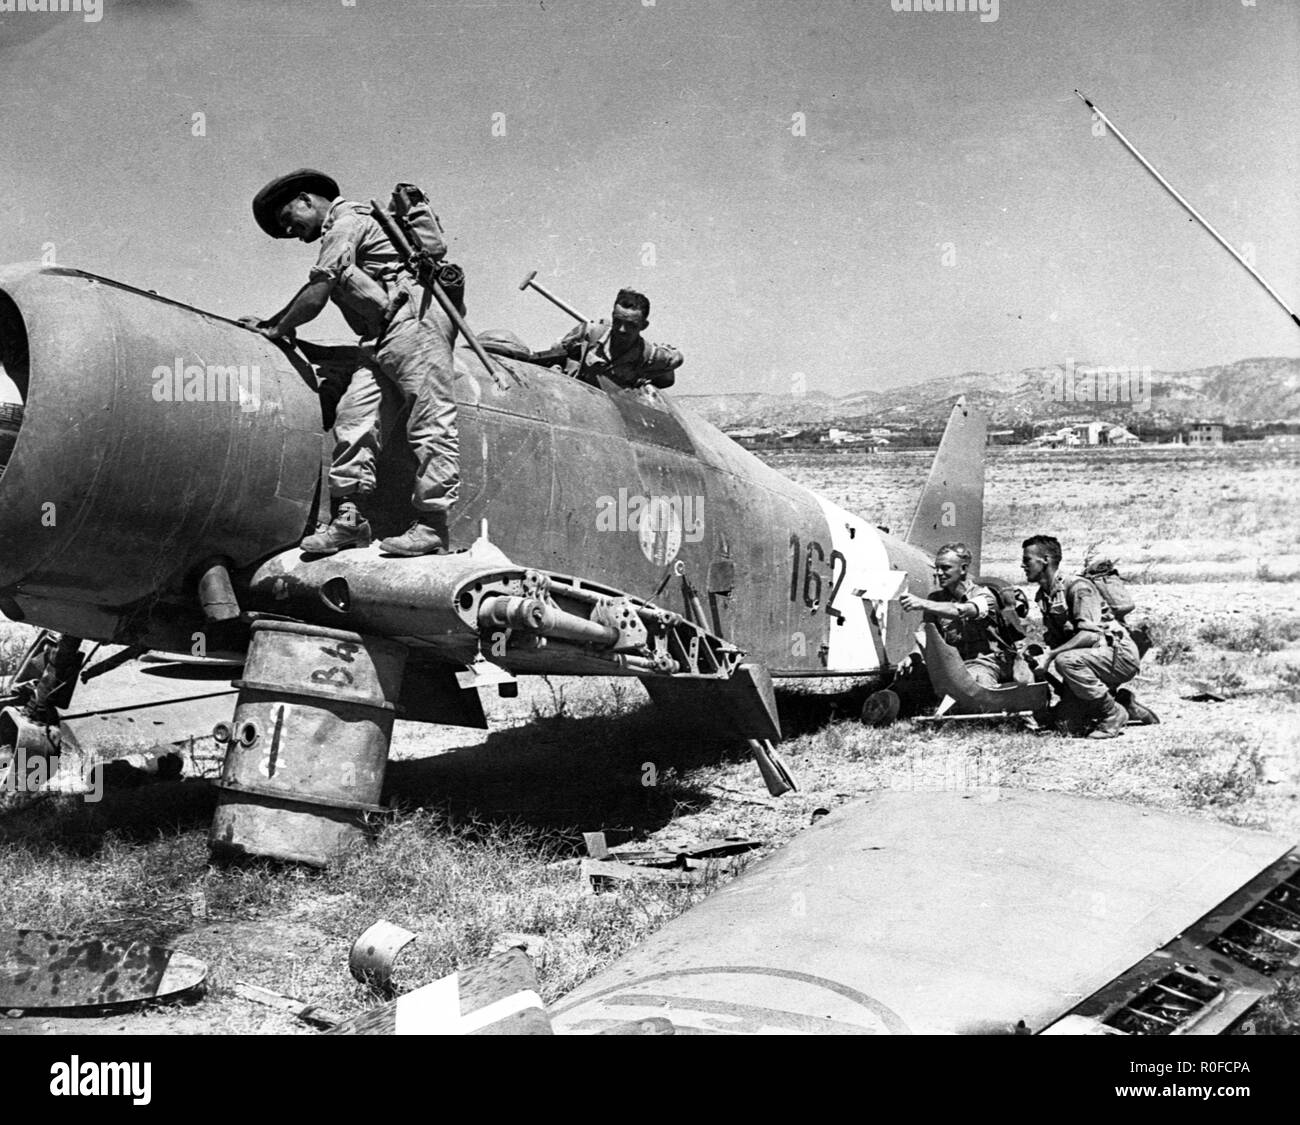 Invasion und Befreiung der Insel Sizilien mit  Kanadische Armeekräfte 10. Juli 1943 - Invasion and liberation of the island of Sicily  / Operation Husky with 1st Canadian Infantry Division at the 10 July 1943 - Stock Image